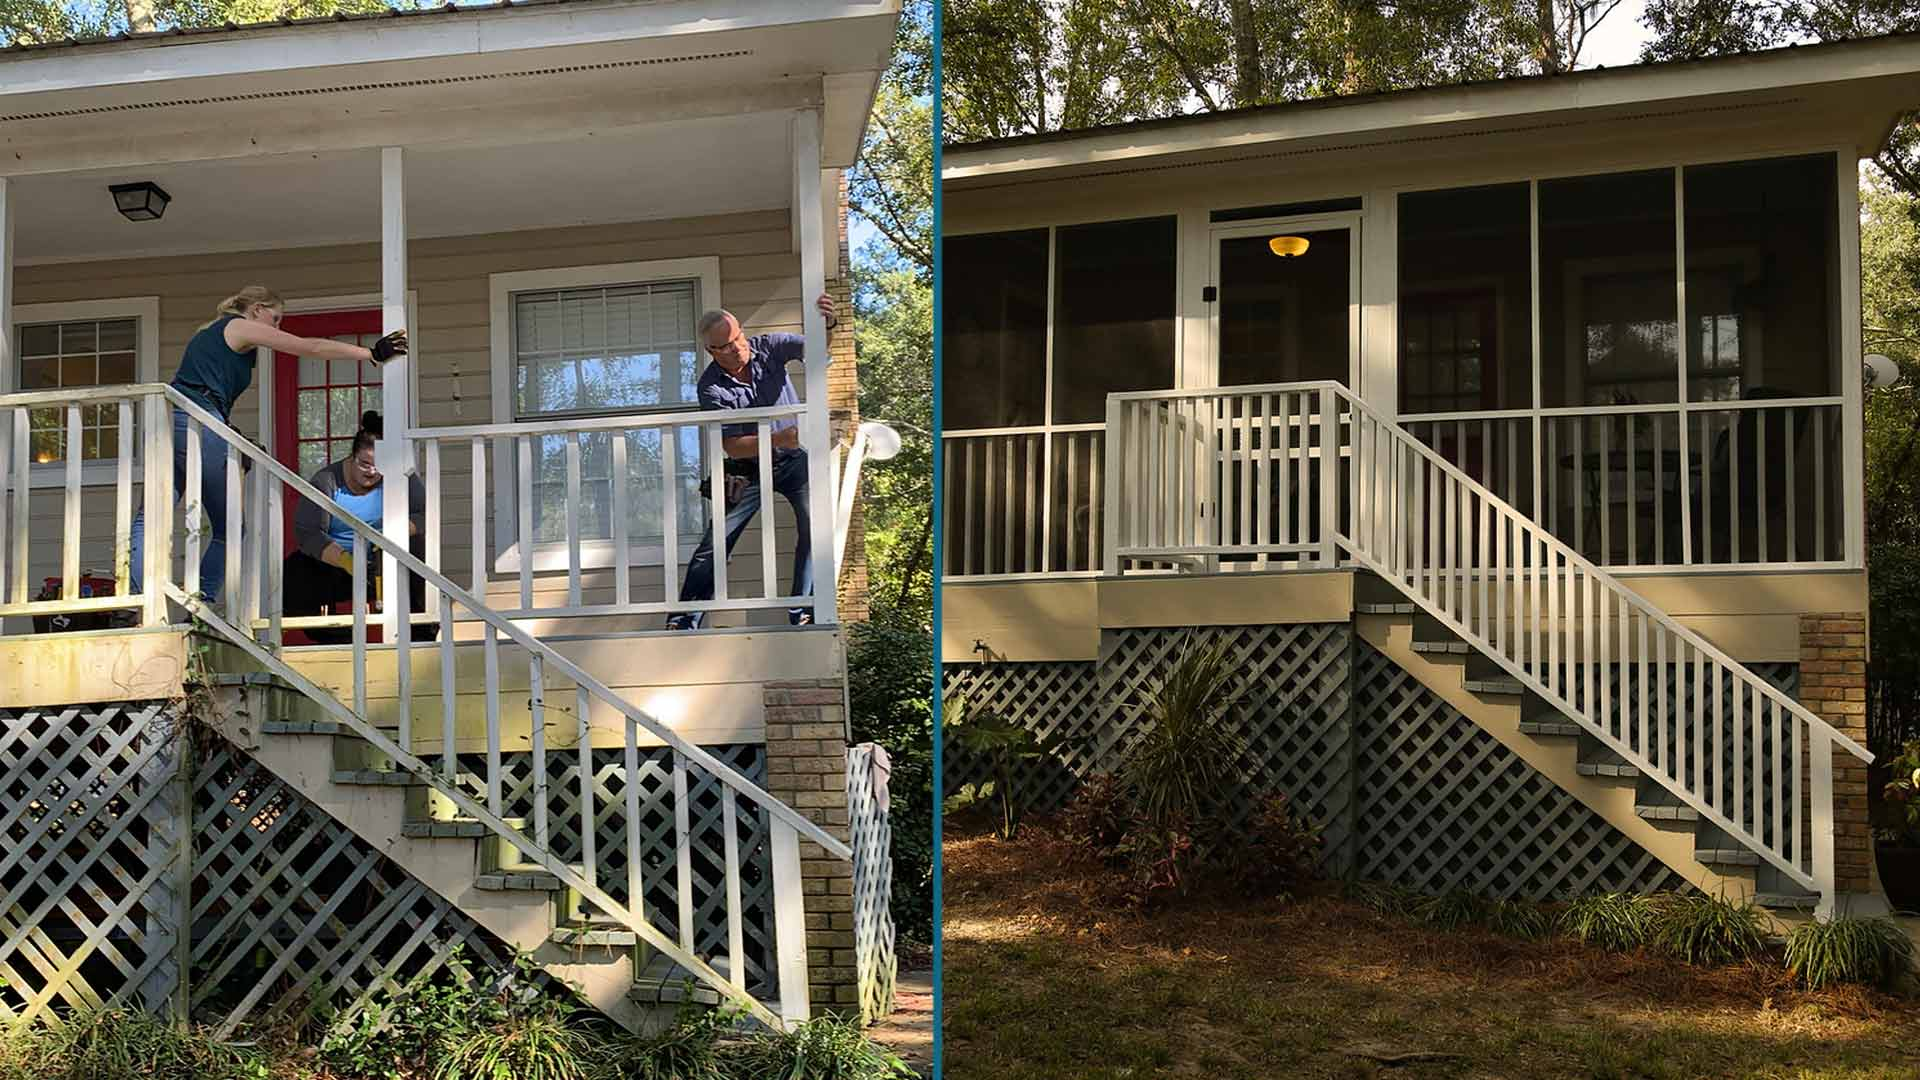 Split screen showing the before and after shots of screening in a back porch